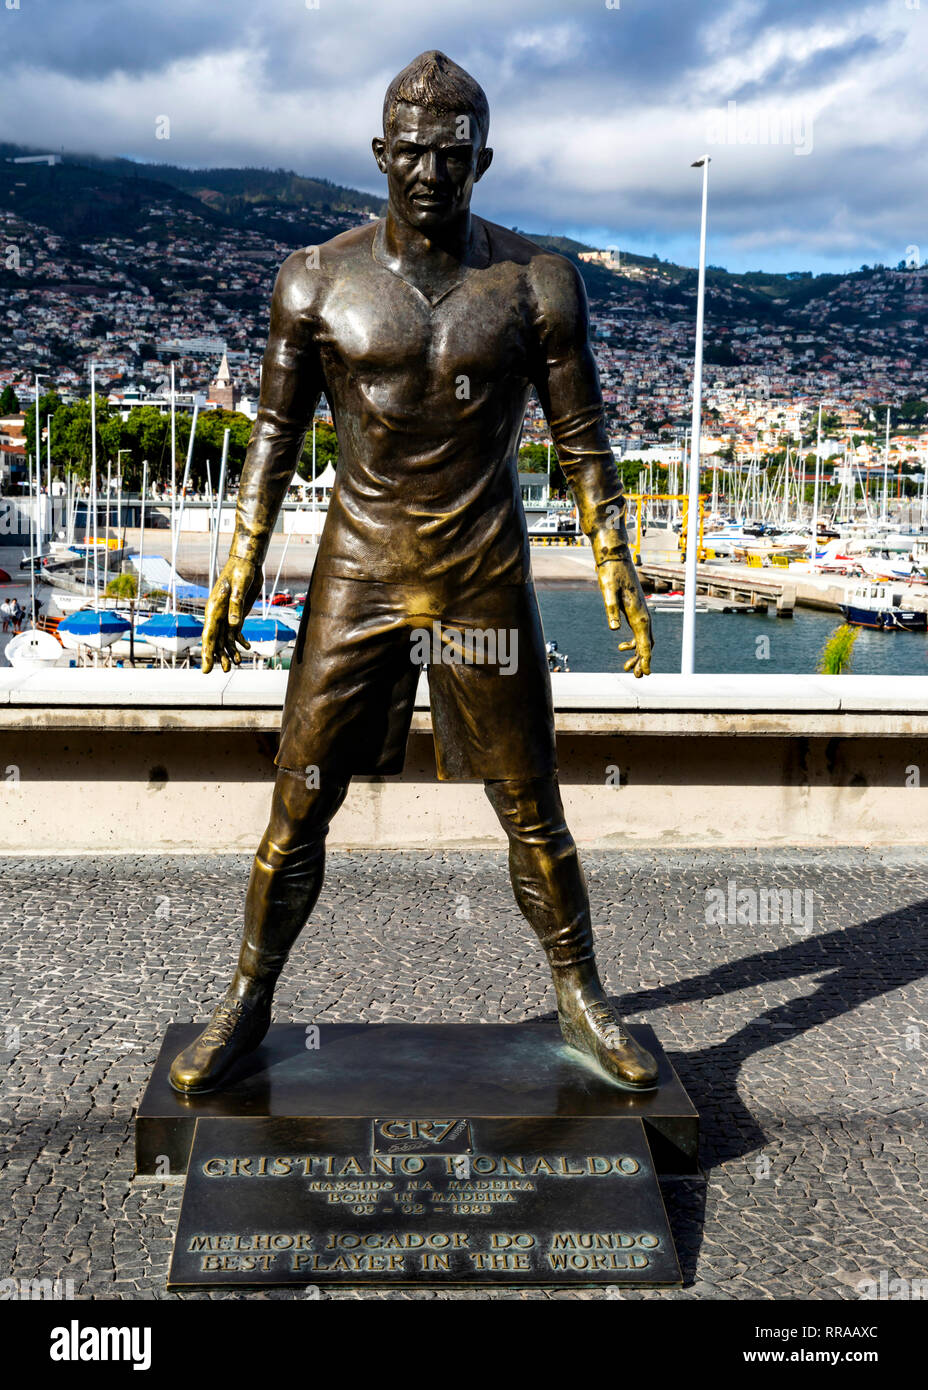 Cristiano Ronaldo's statue on the waterfront outside the CR7 Museum, Funchal Madeira, Portugal. - Stock Image